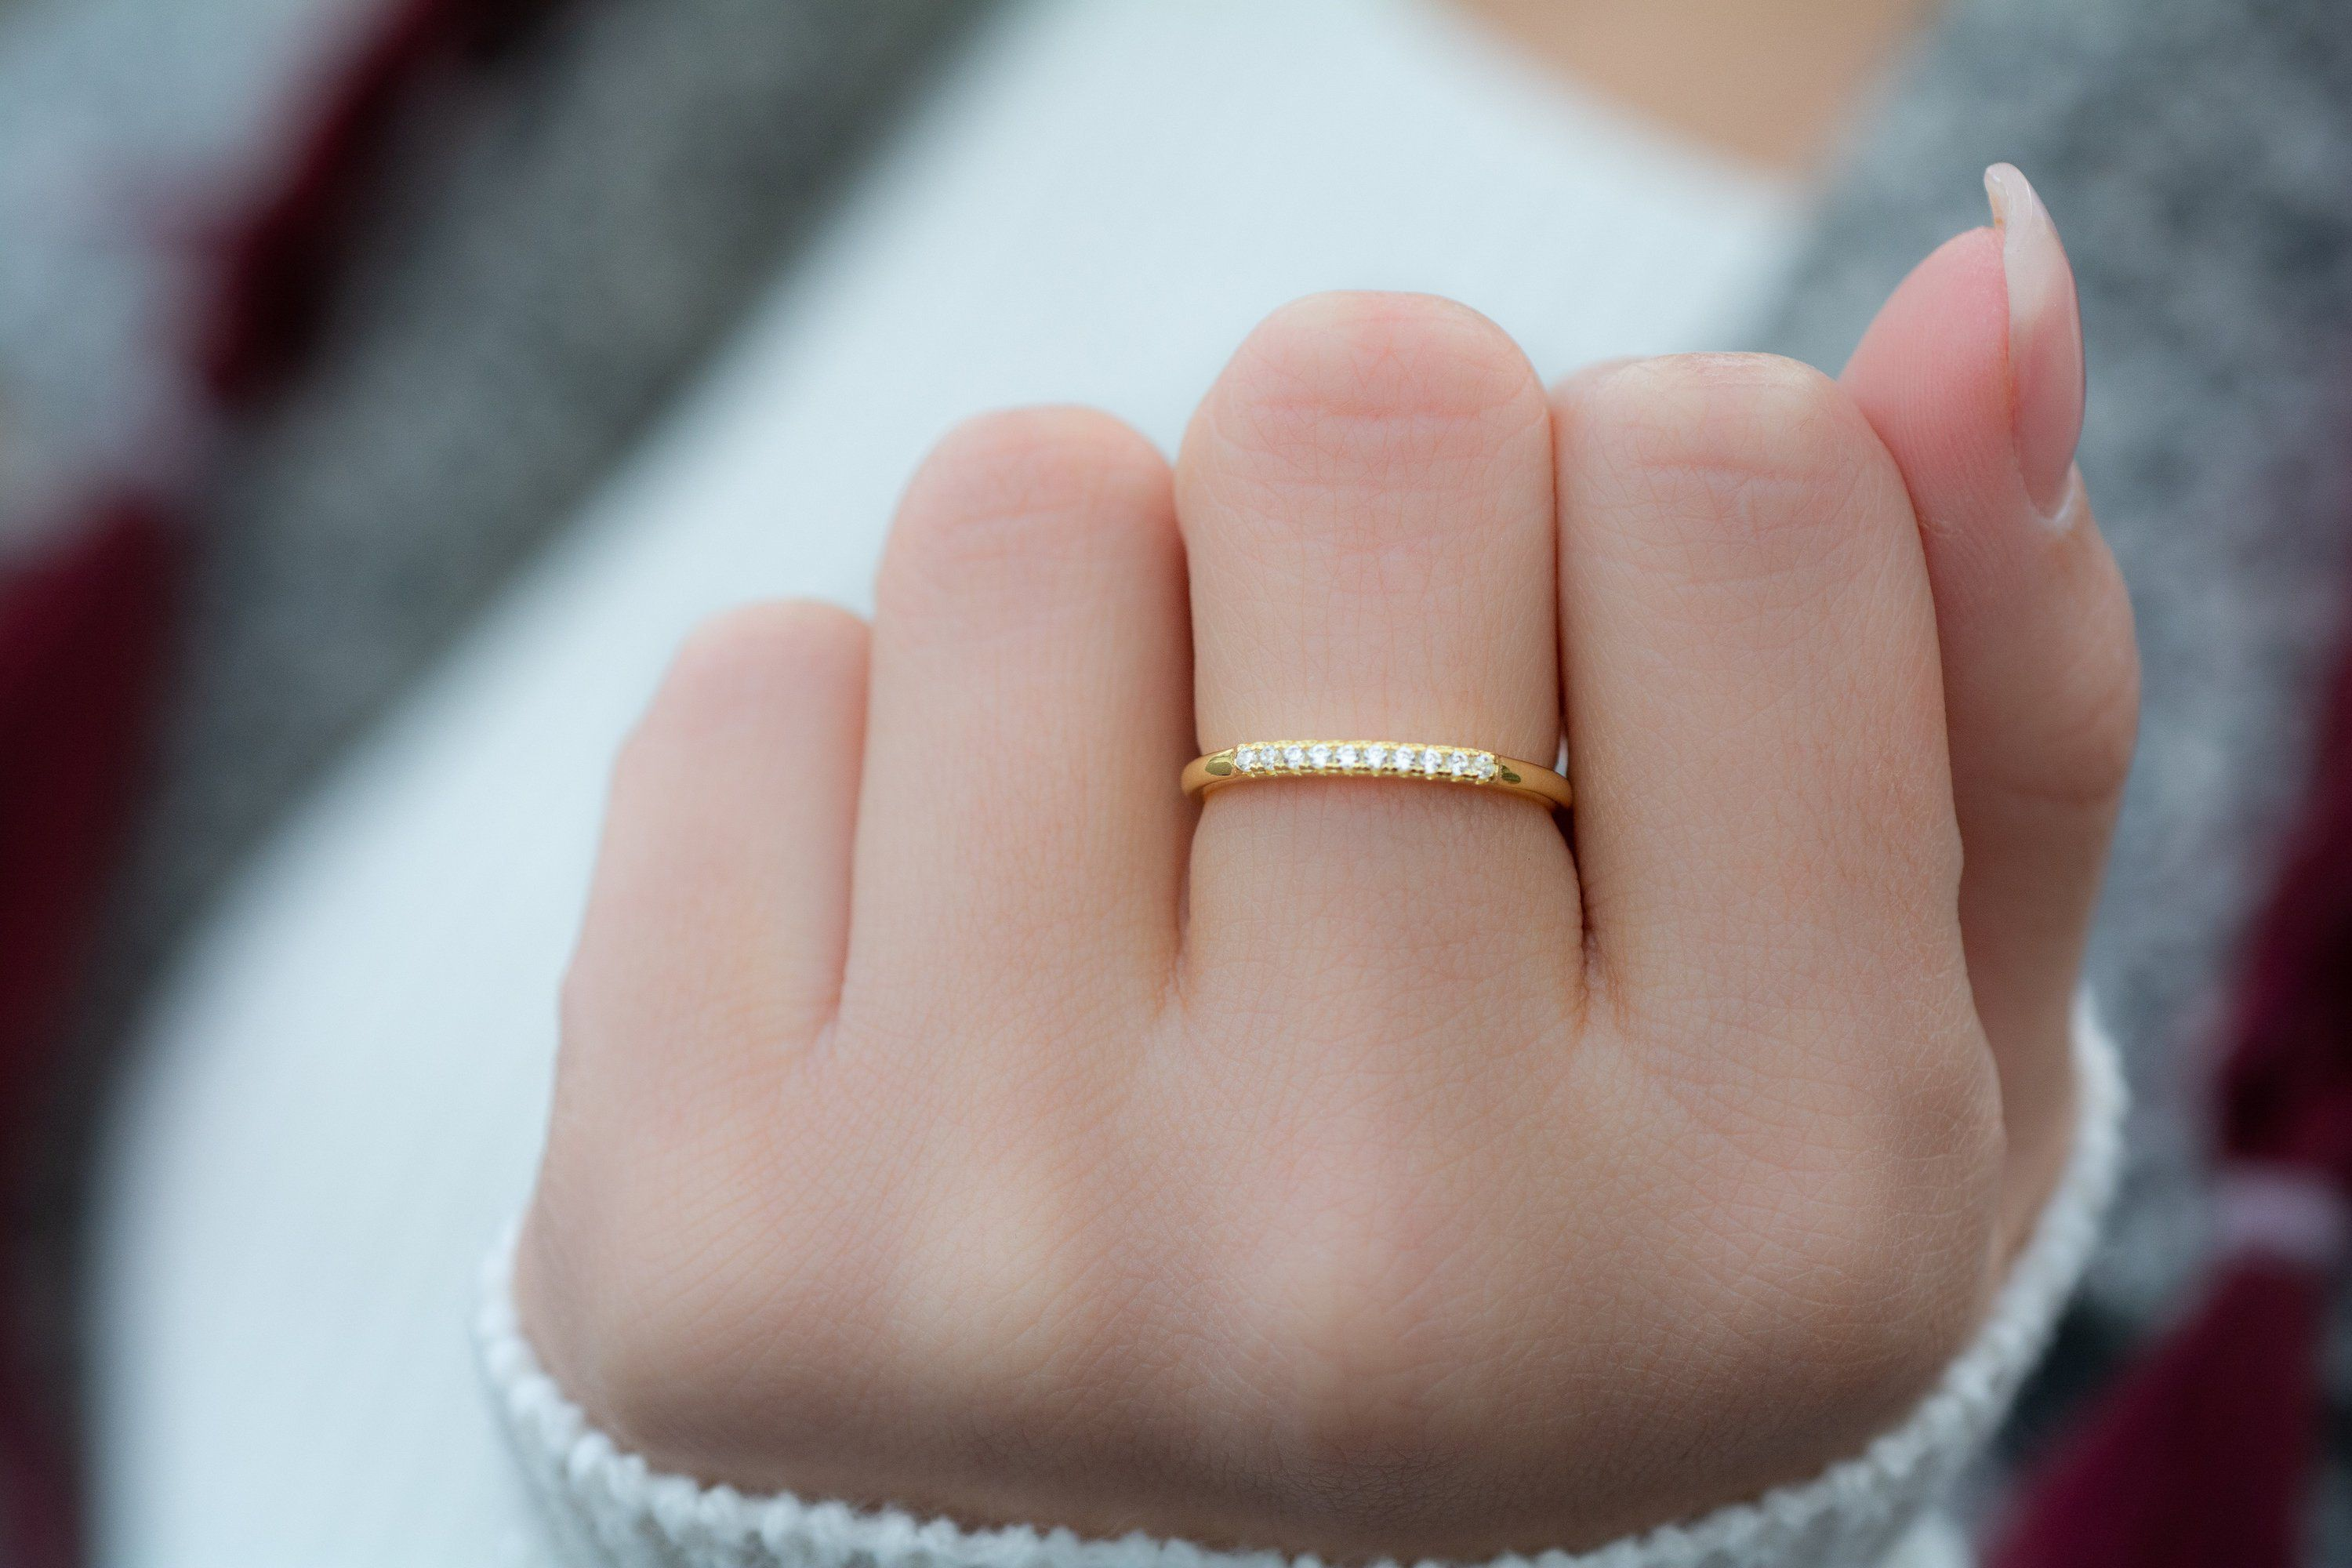 Vermeil White Gold Dainty Rose Gold Minimalist Stacking Ring Thin Sterling Silver Ring Thin Gold Ring 925 Cubic Zirconia 14K Gold